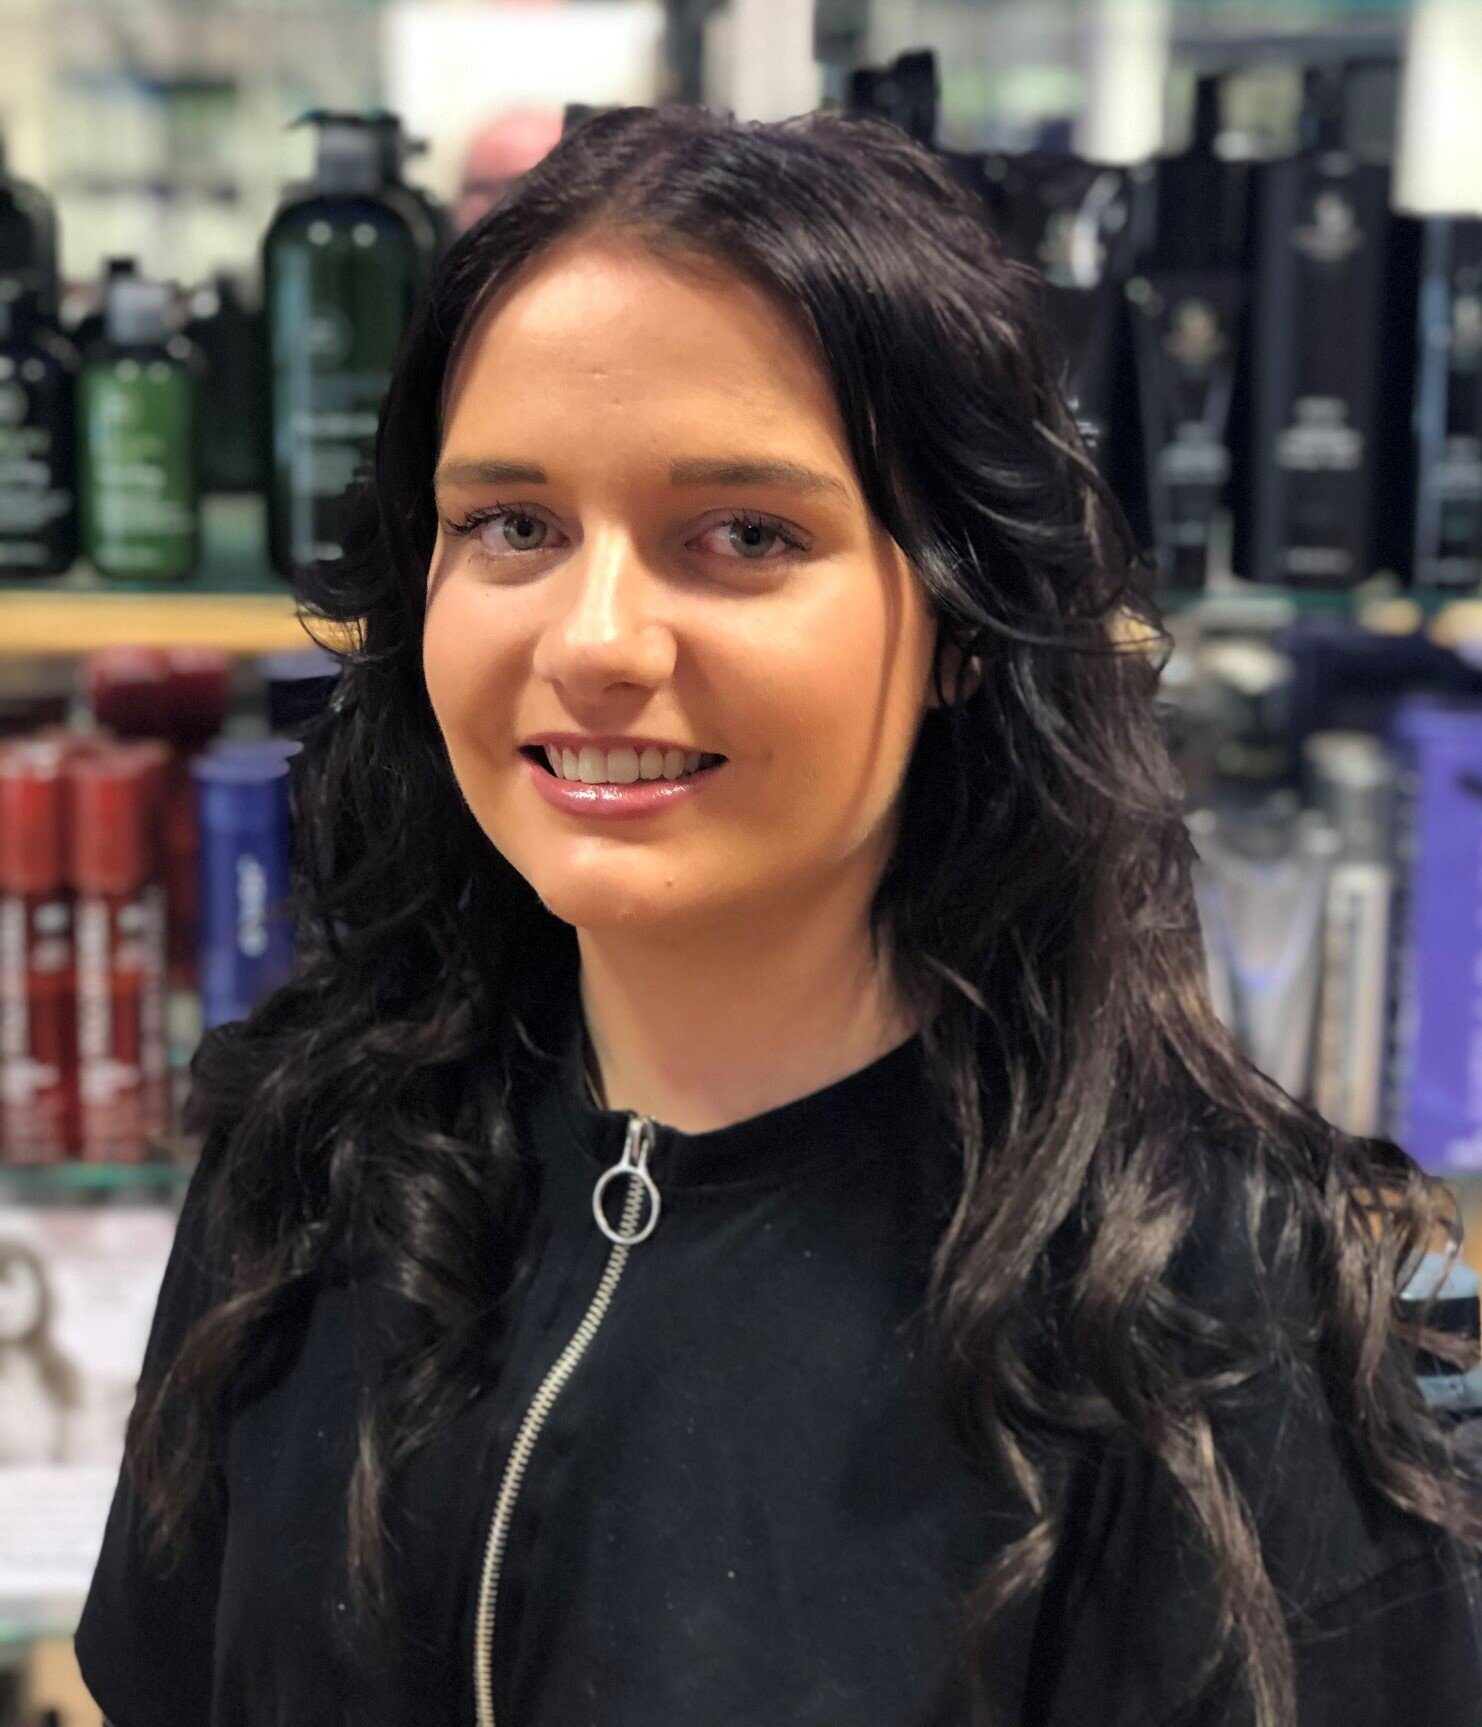 Laura  -   is the salon's new Future Professional; joining the team in June 2019 she is presently sharpening her skills in all aspects of hairdressing.